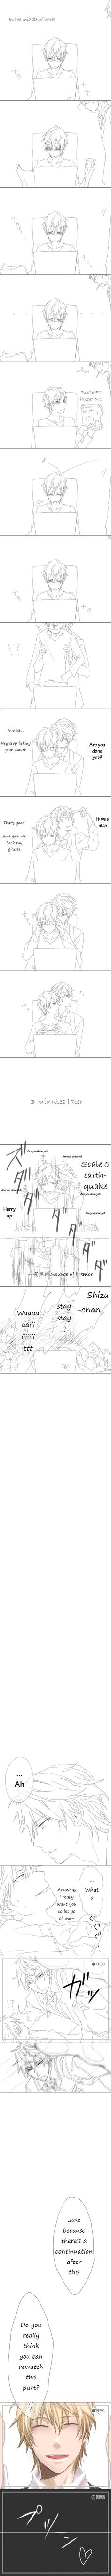 Im not that big a fan of Yaoi but this is just too adorable <3 (the first part, didn't even see the second part XD)